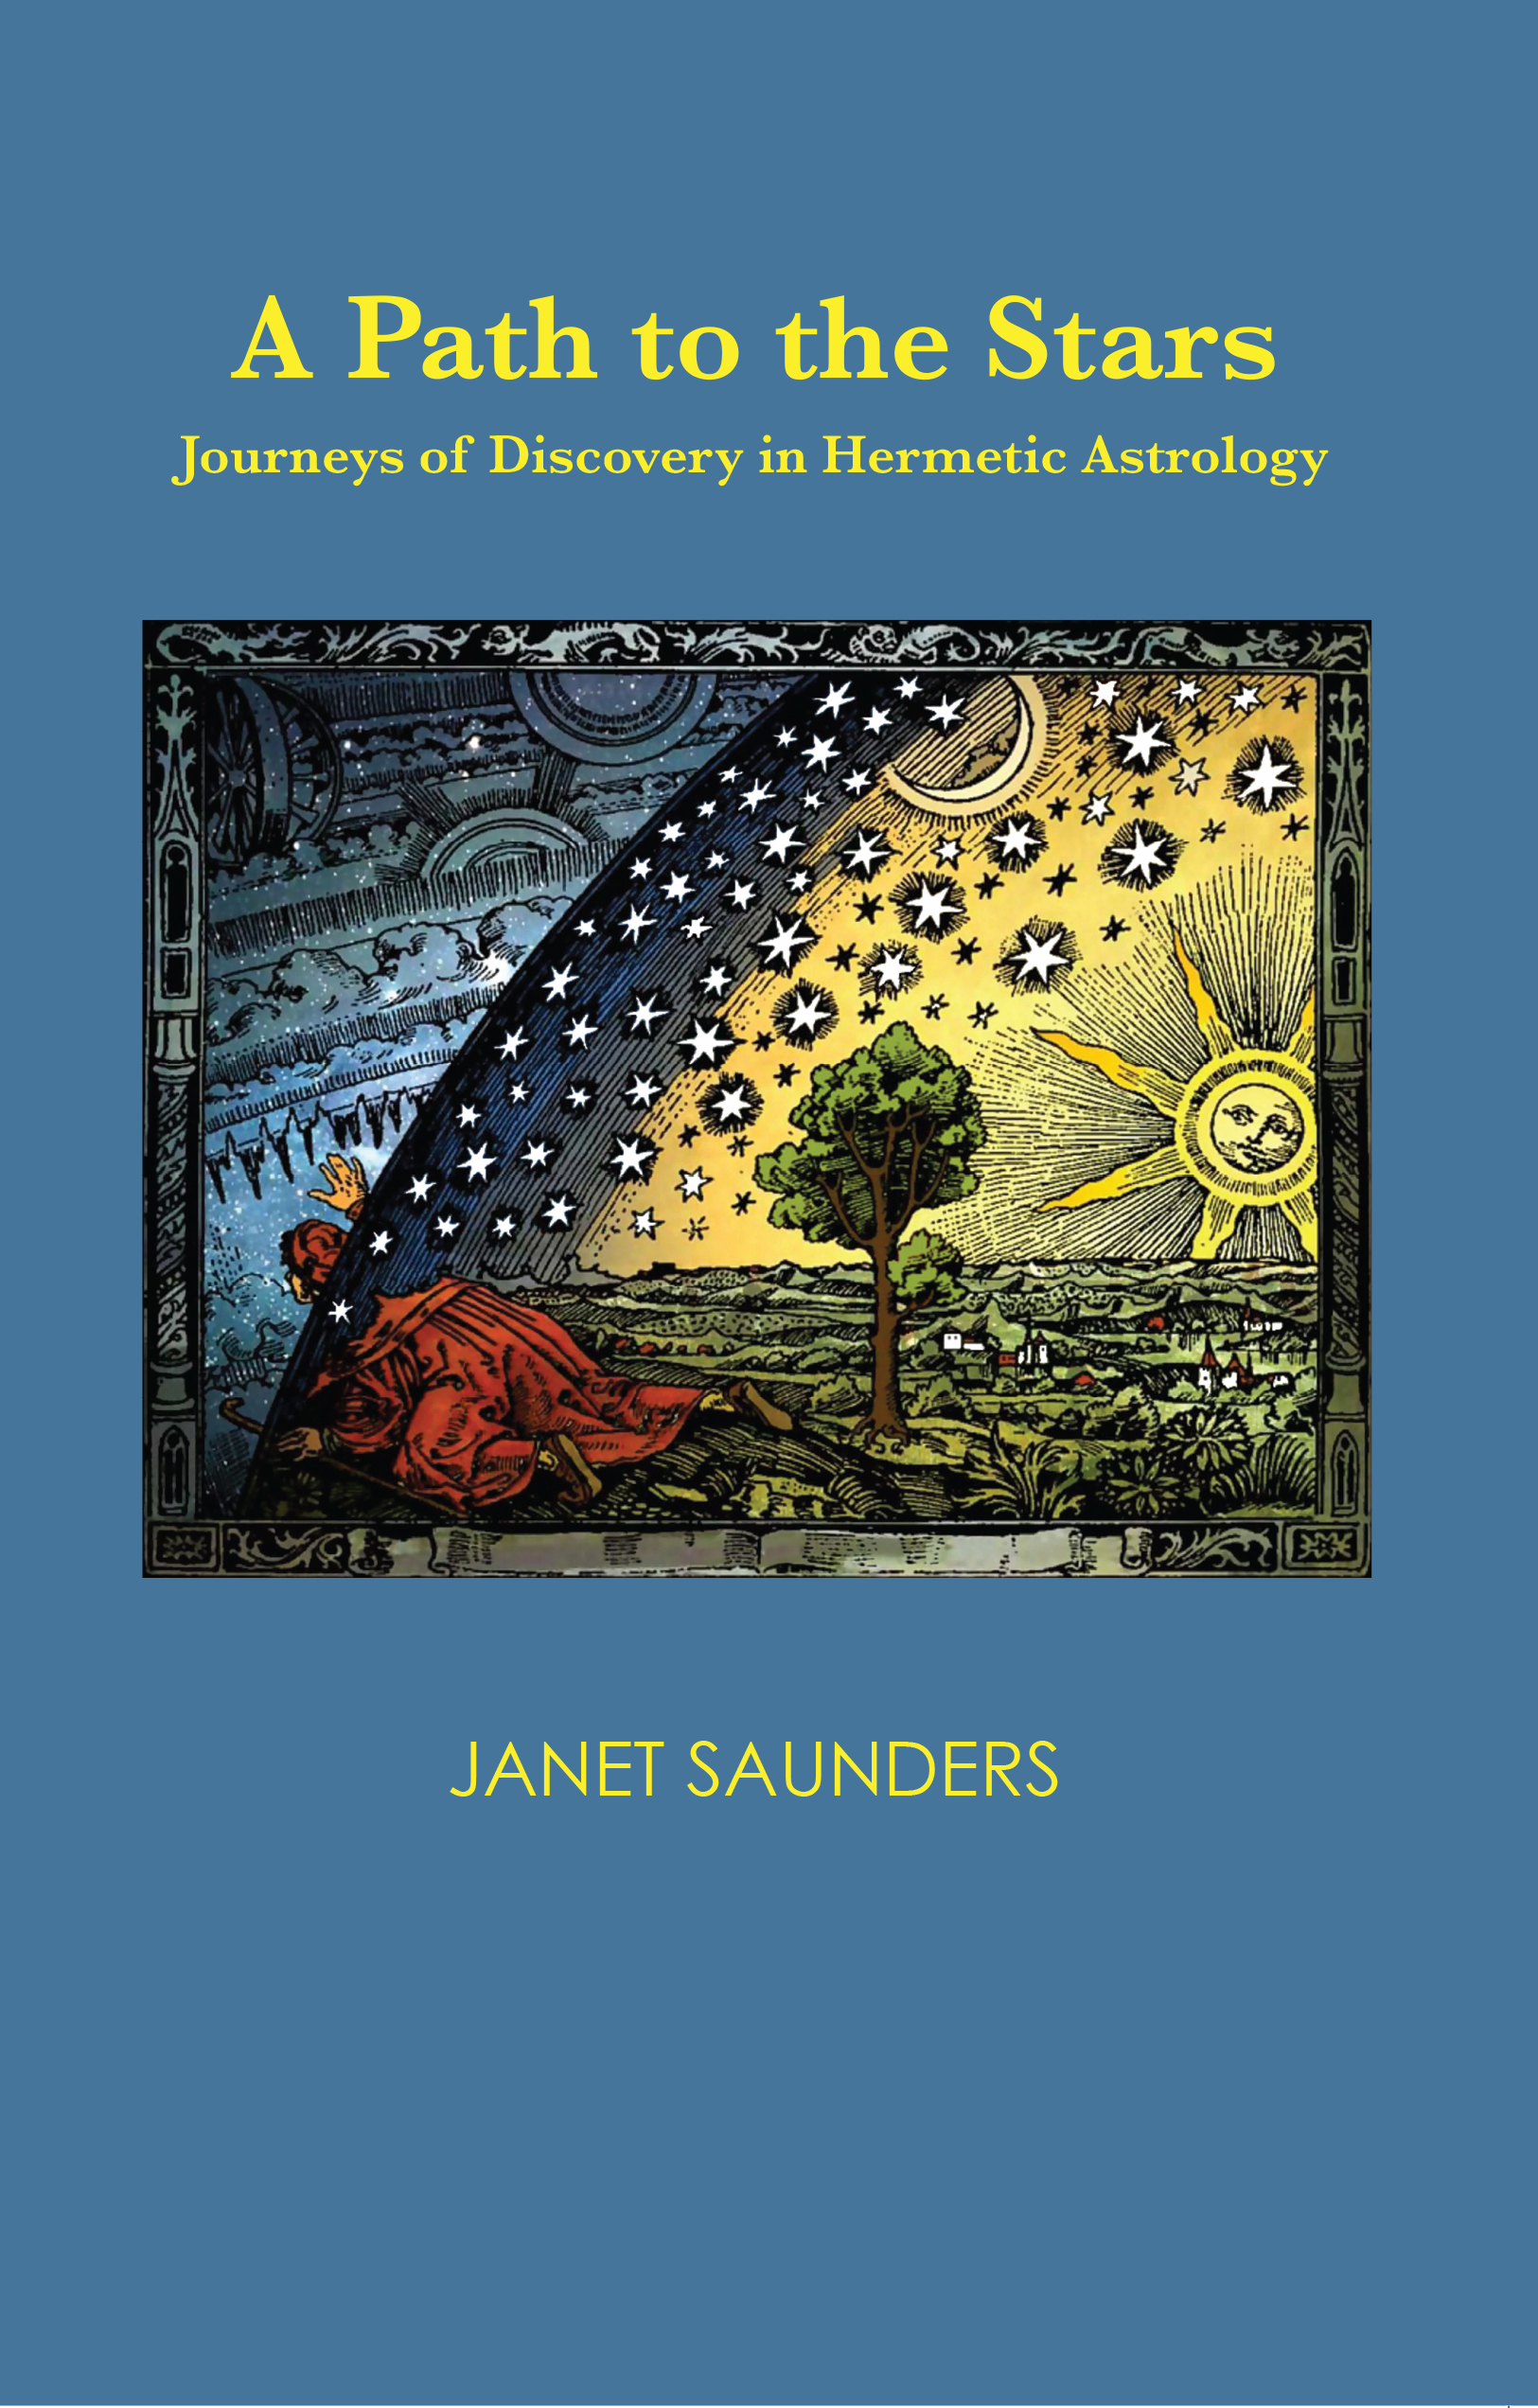 Hermetic Astrology is the theme of Janet Saunders' first book